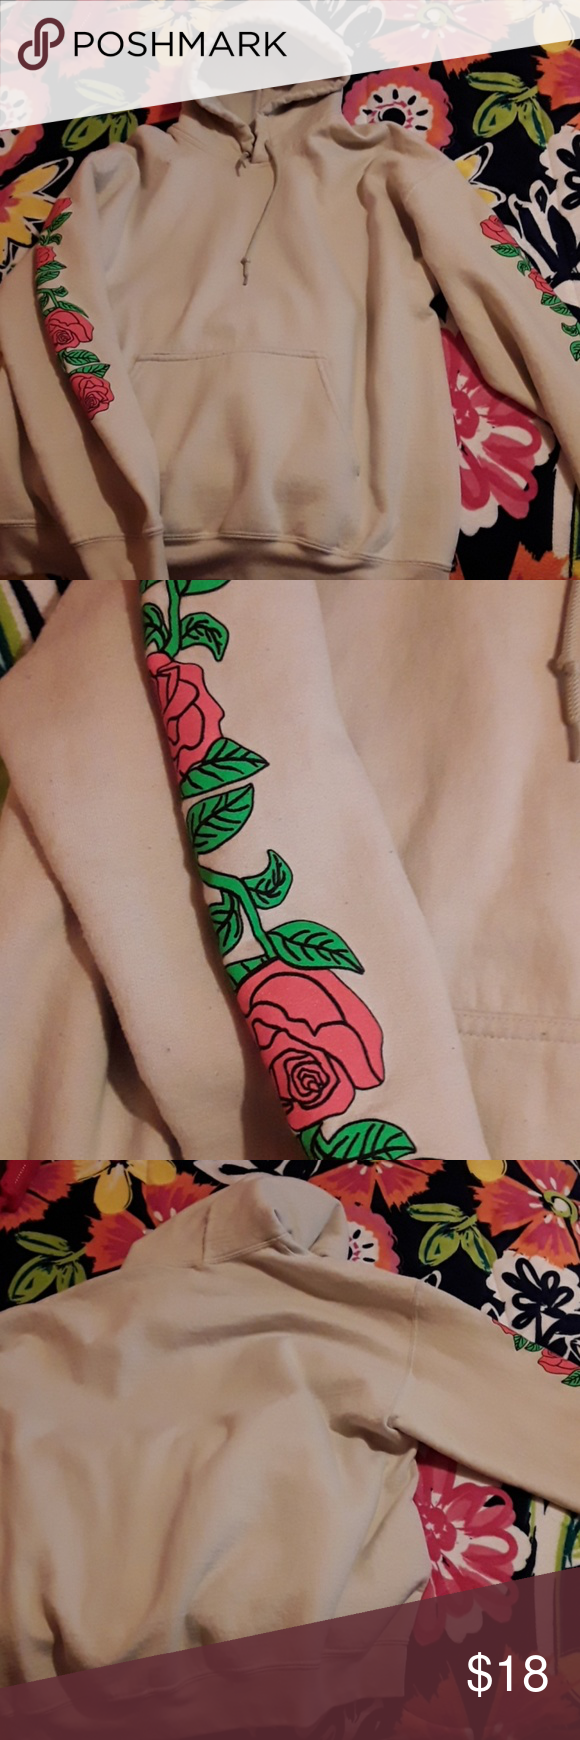 Artist Union Clothing Co Hoodie Beige With Rose Design On Sleeves